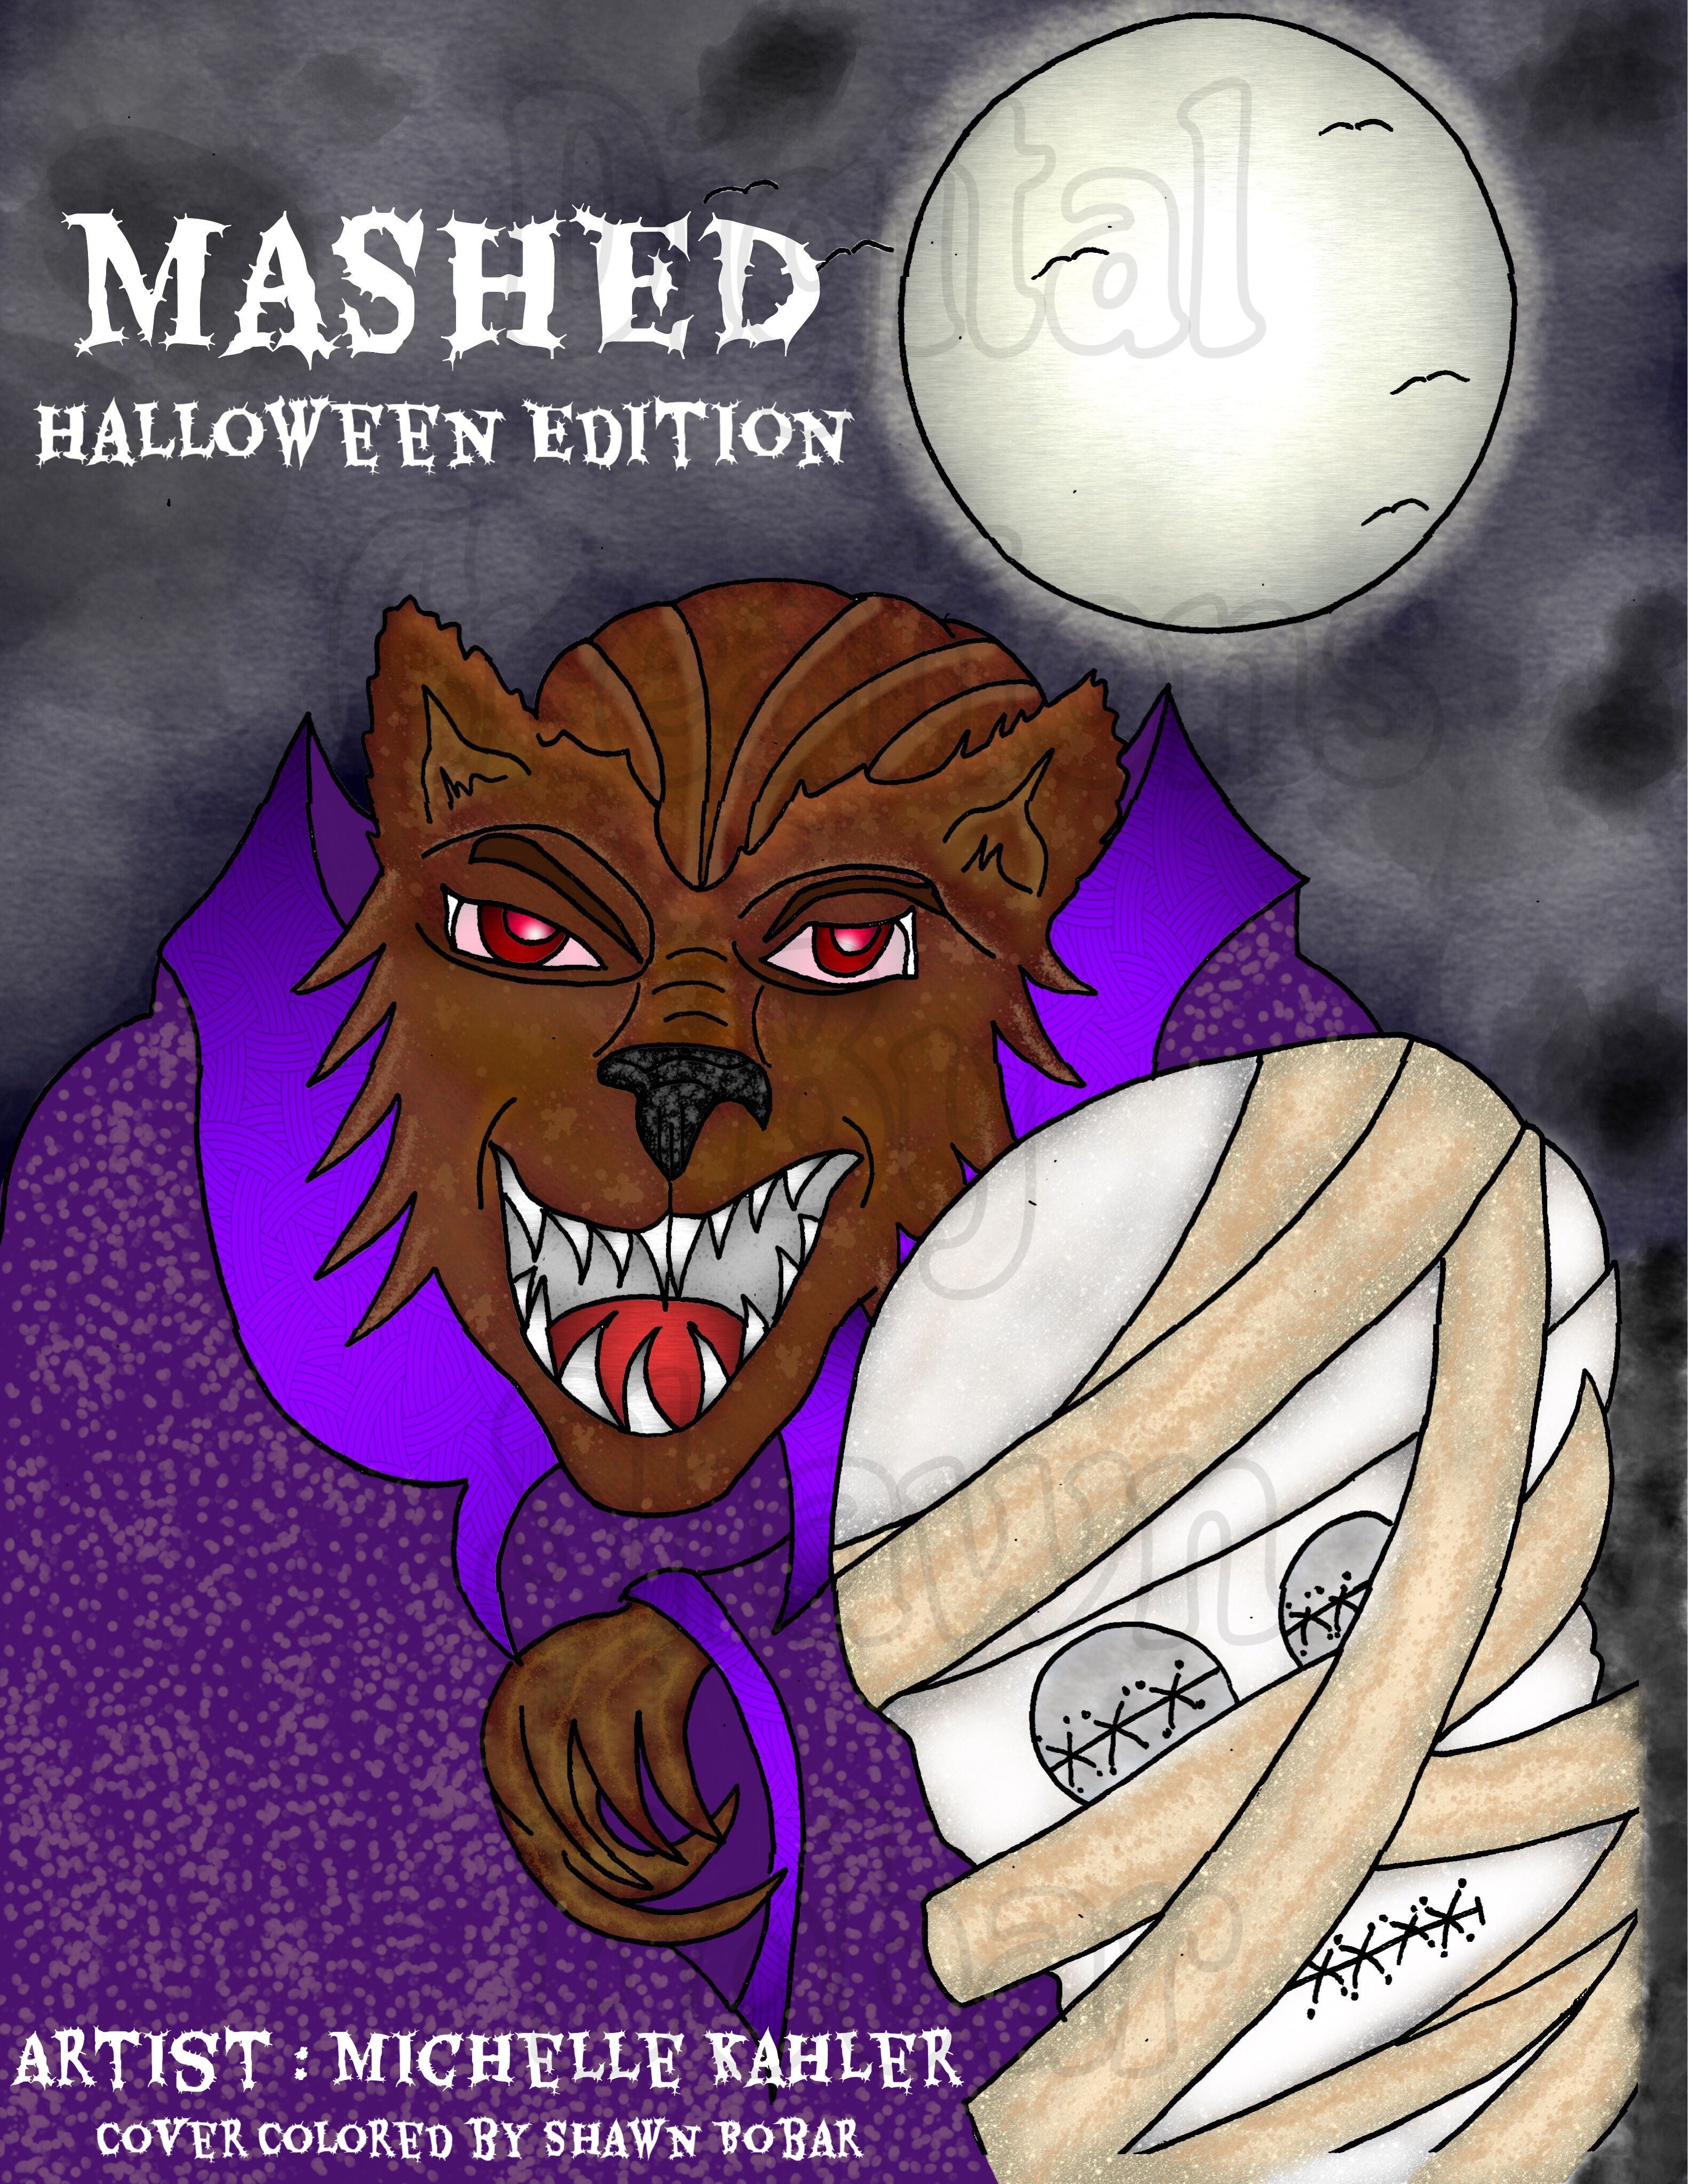 Artist Is Michelle Kahler For Her New Book Digital Creations By Shawn Bobar Digitally Colored